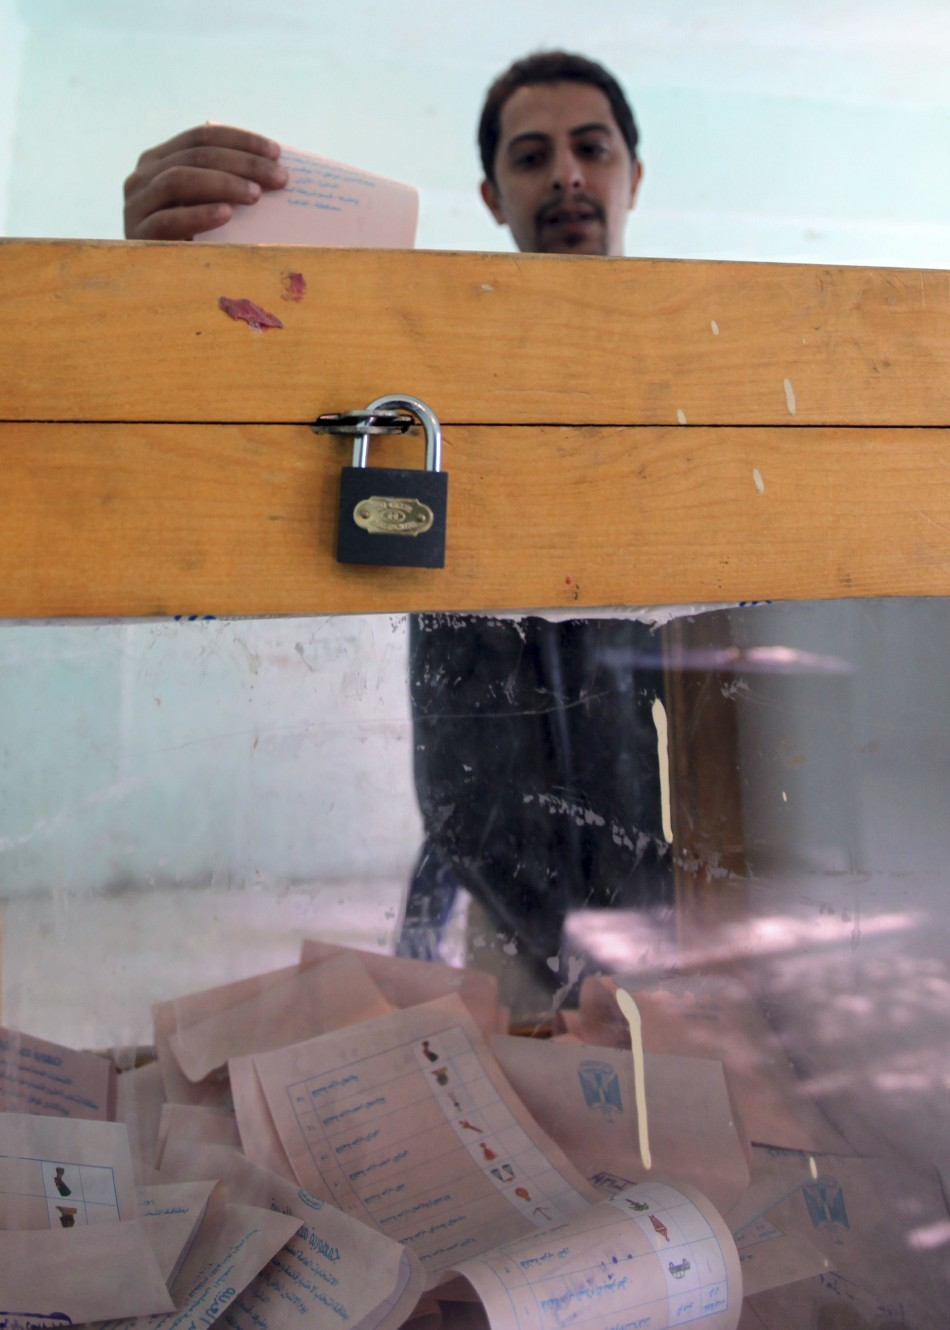 A man casts his vote at a polling station during parliamentary elections in Cairo